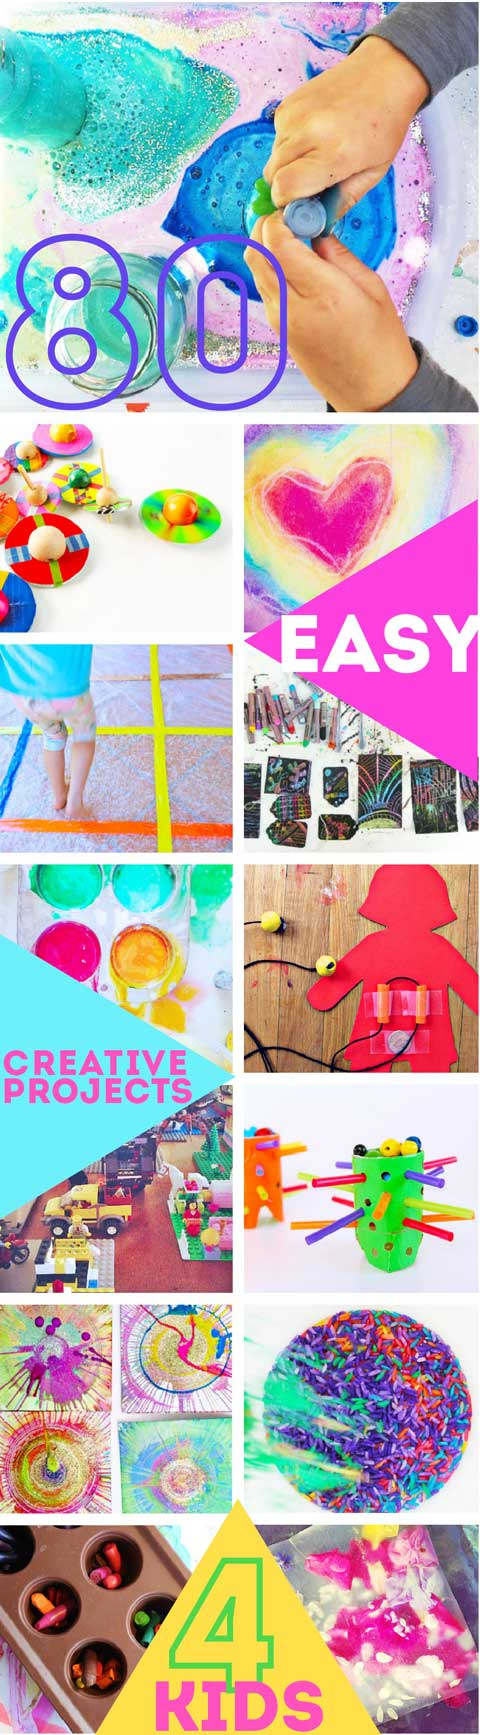 medium resolution of 80 easy creative projects for kids including activities art crafts science engineering